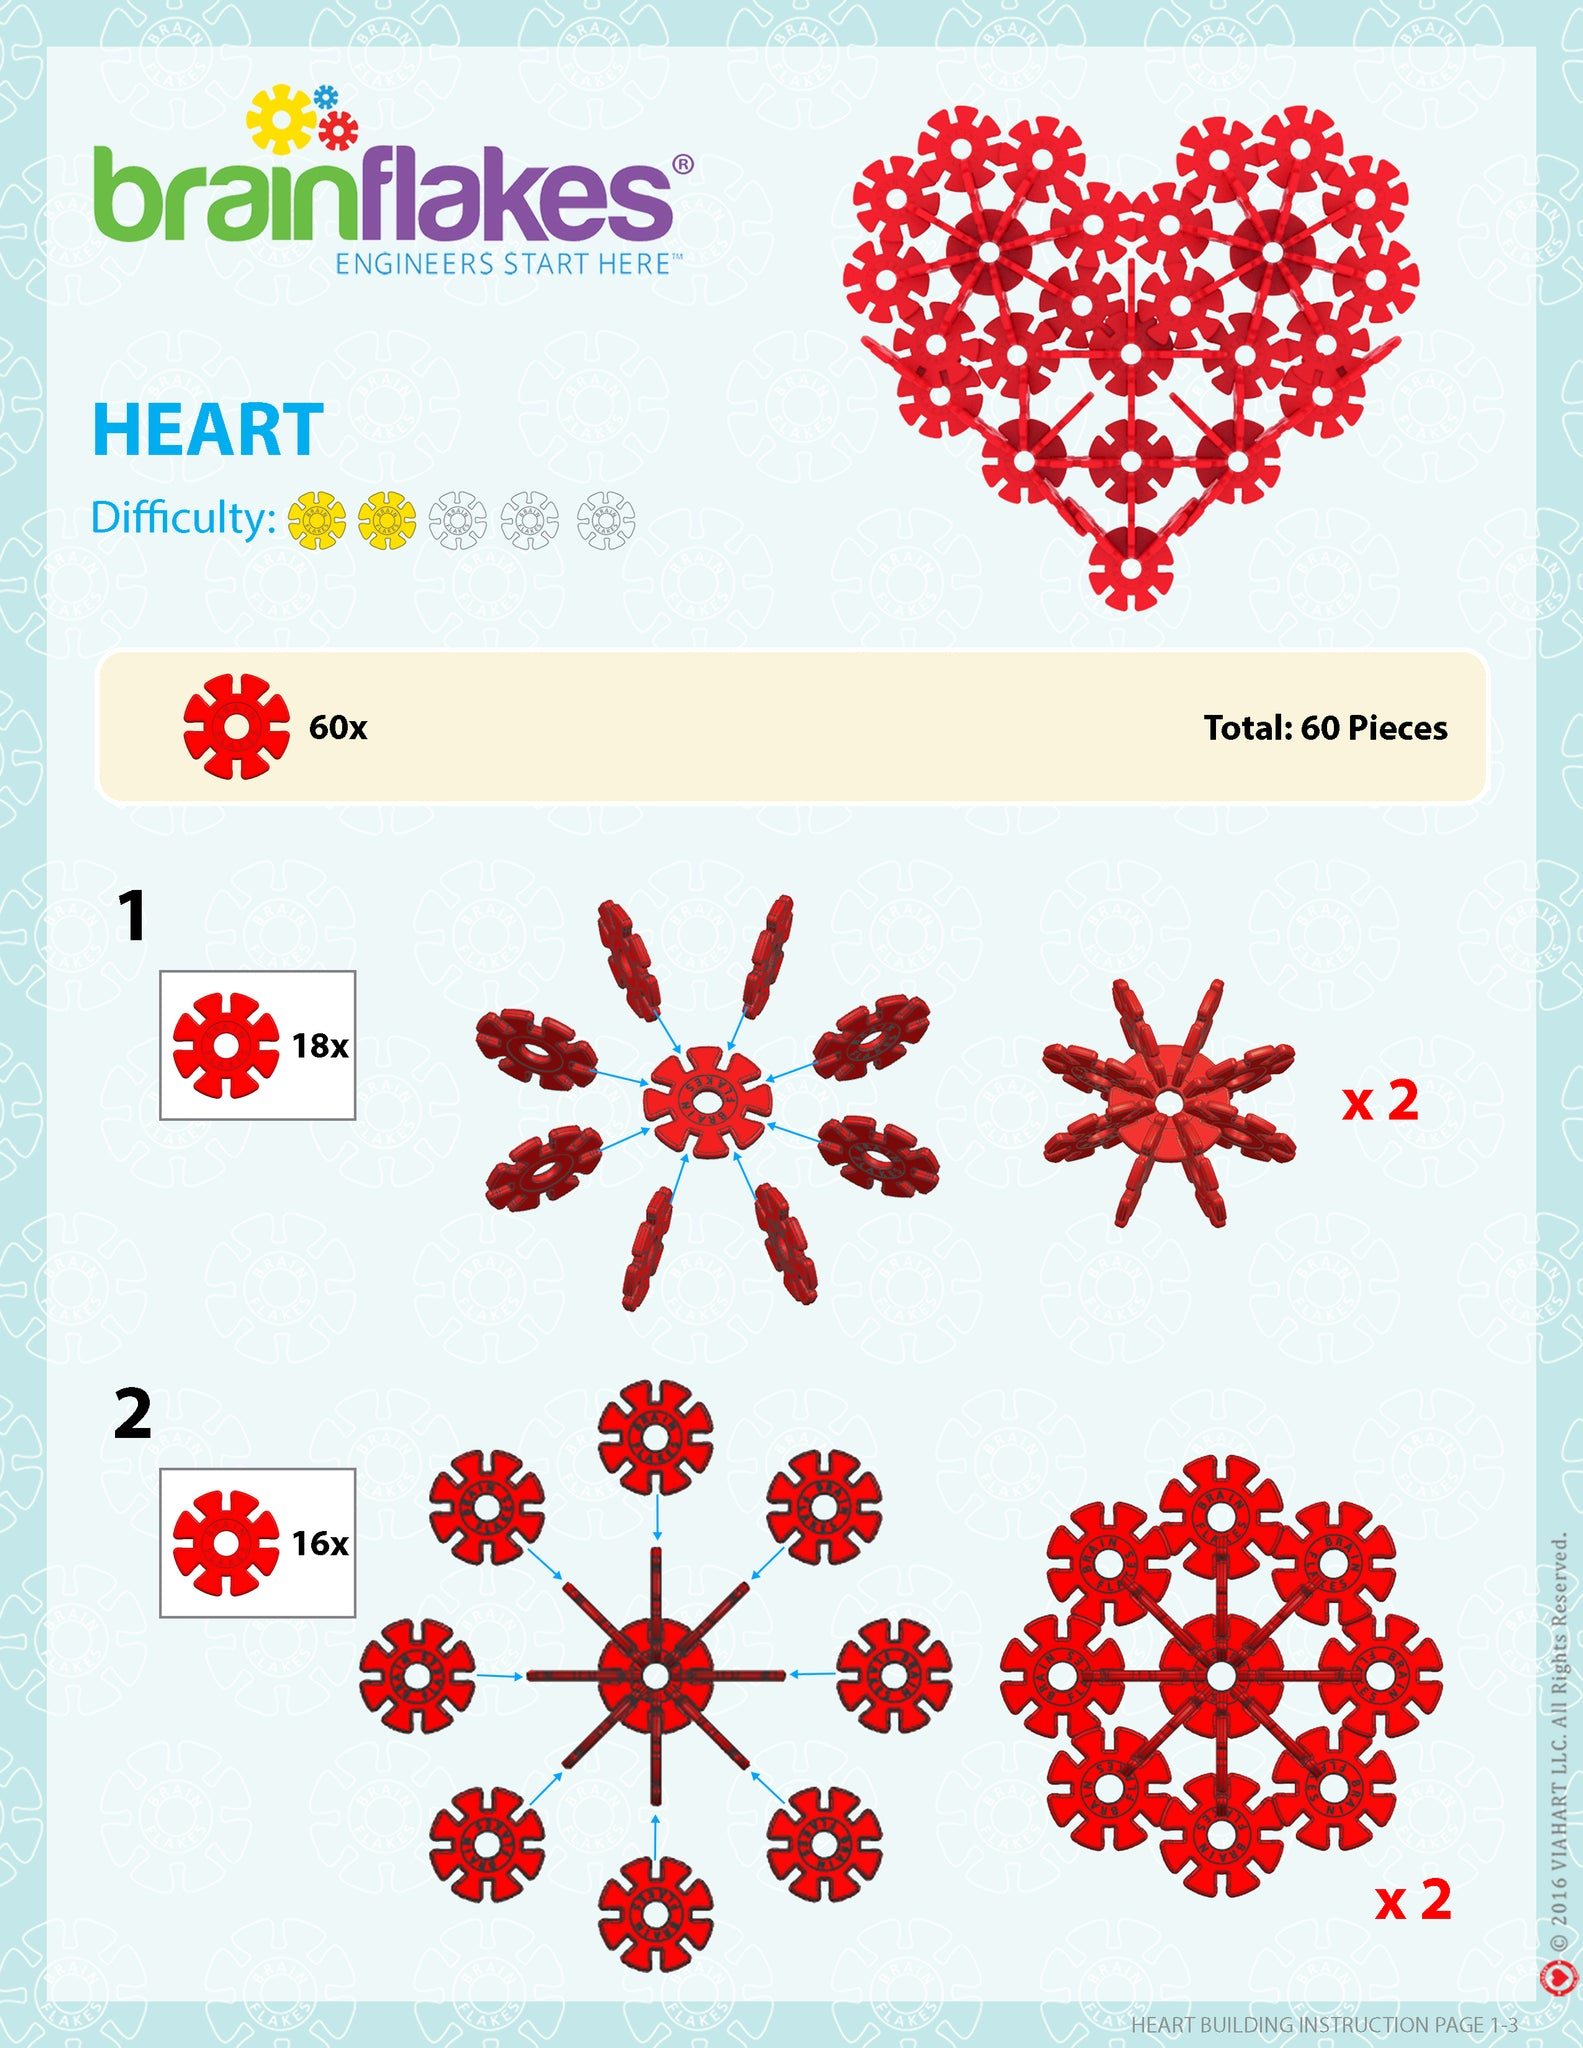 Brain Flakes Heart building instructions 1